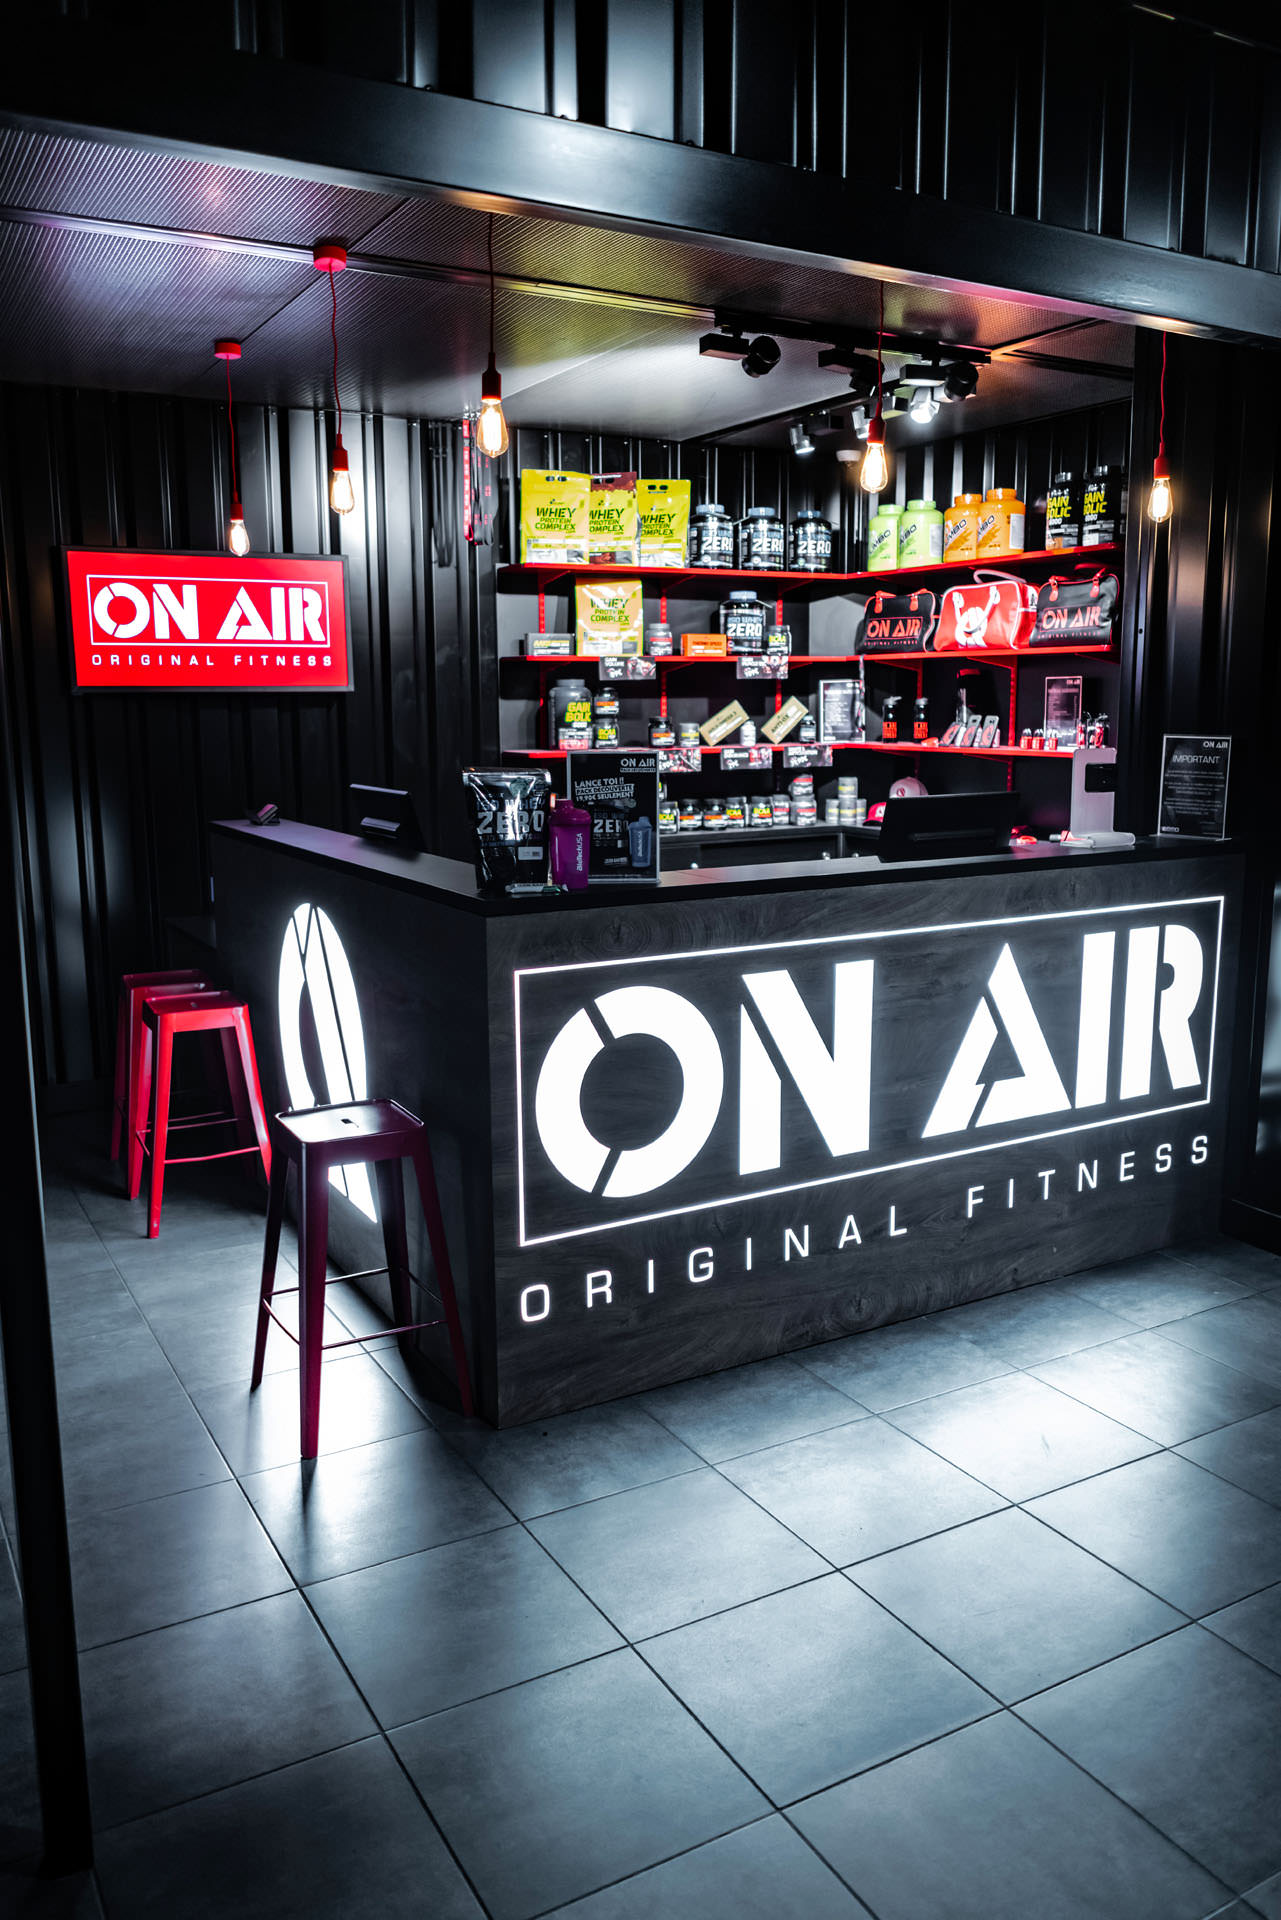 2019-02-28 - On Air - Melun - 06533 - 1920px